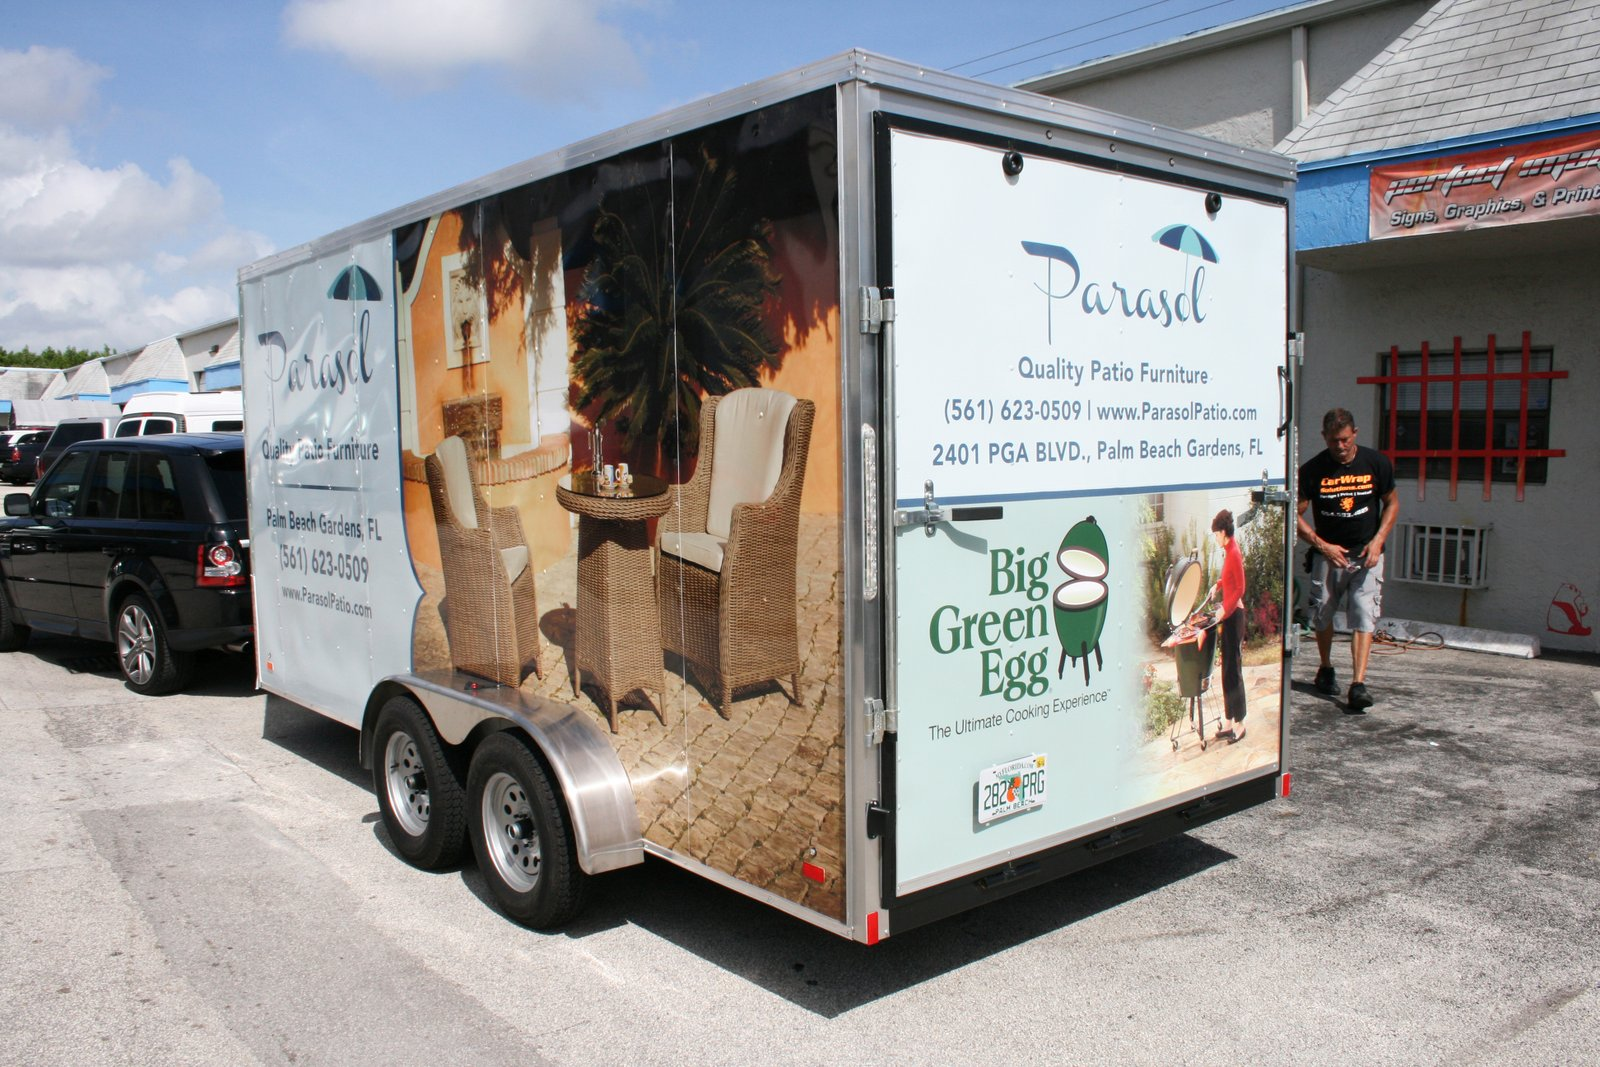 Trailer Wrap Palm Beach Gardens Fl For Parasol Patio Furniture 3m Certified Car Wrap Solutions